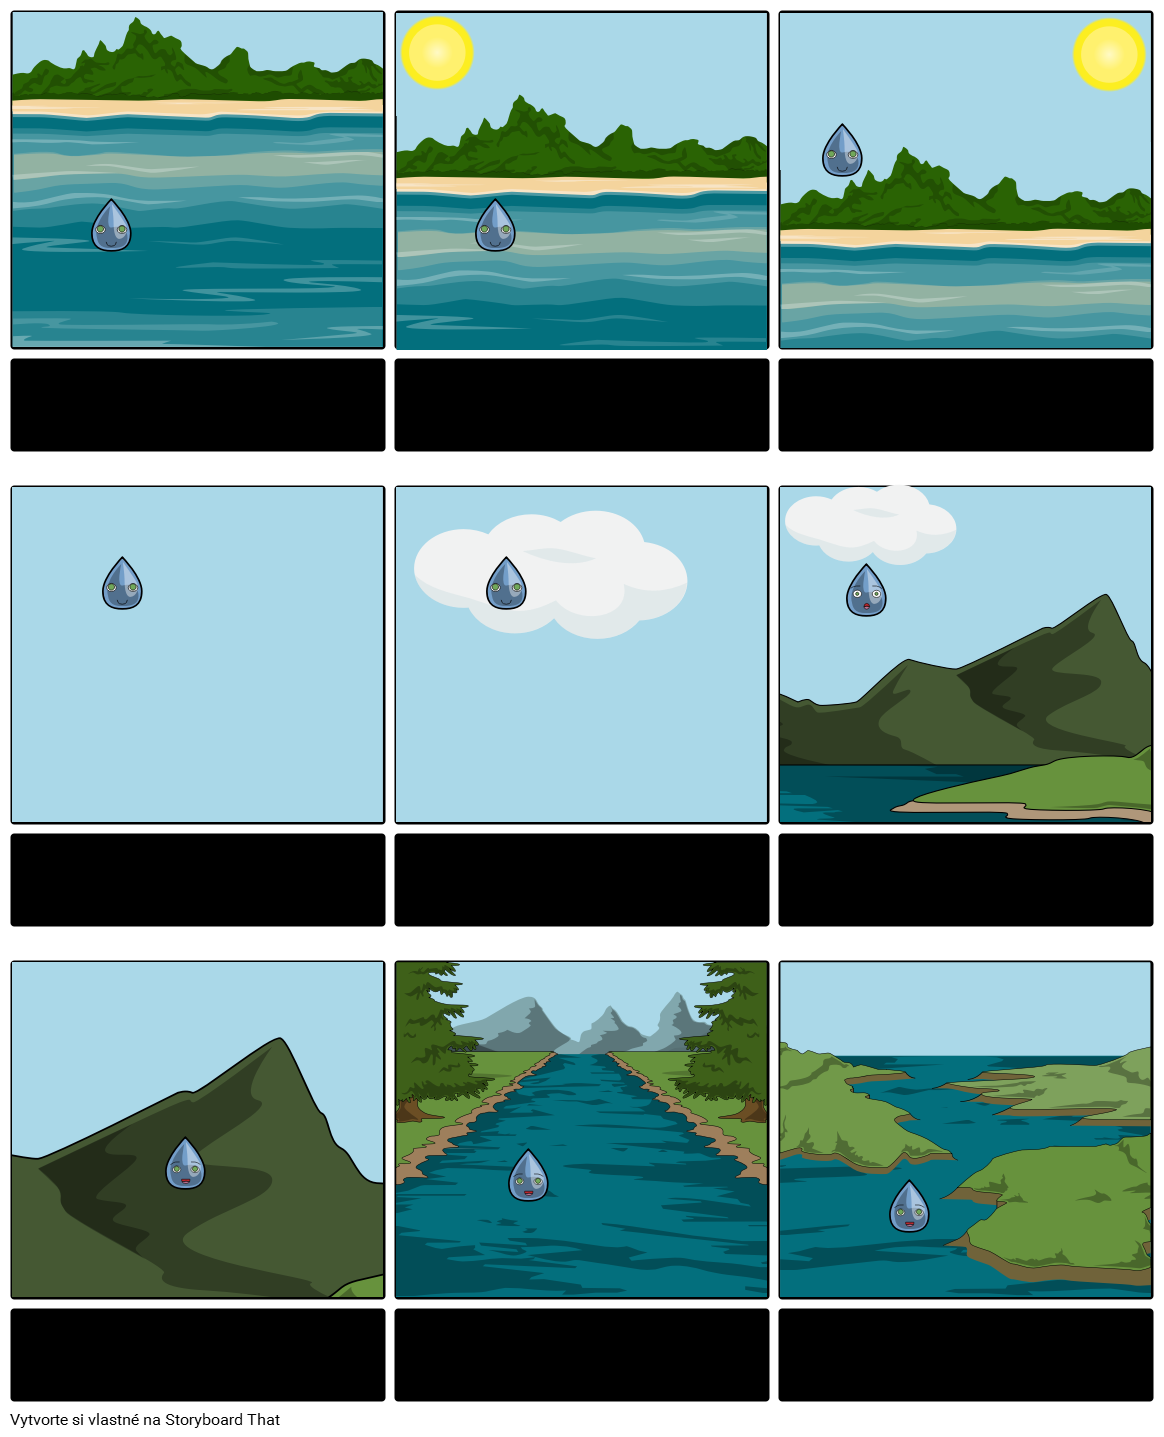 Water Cycle Narrative